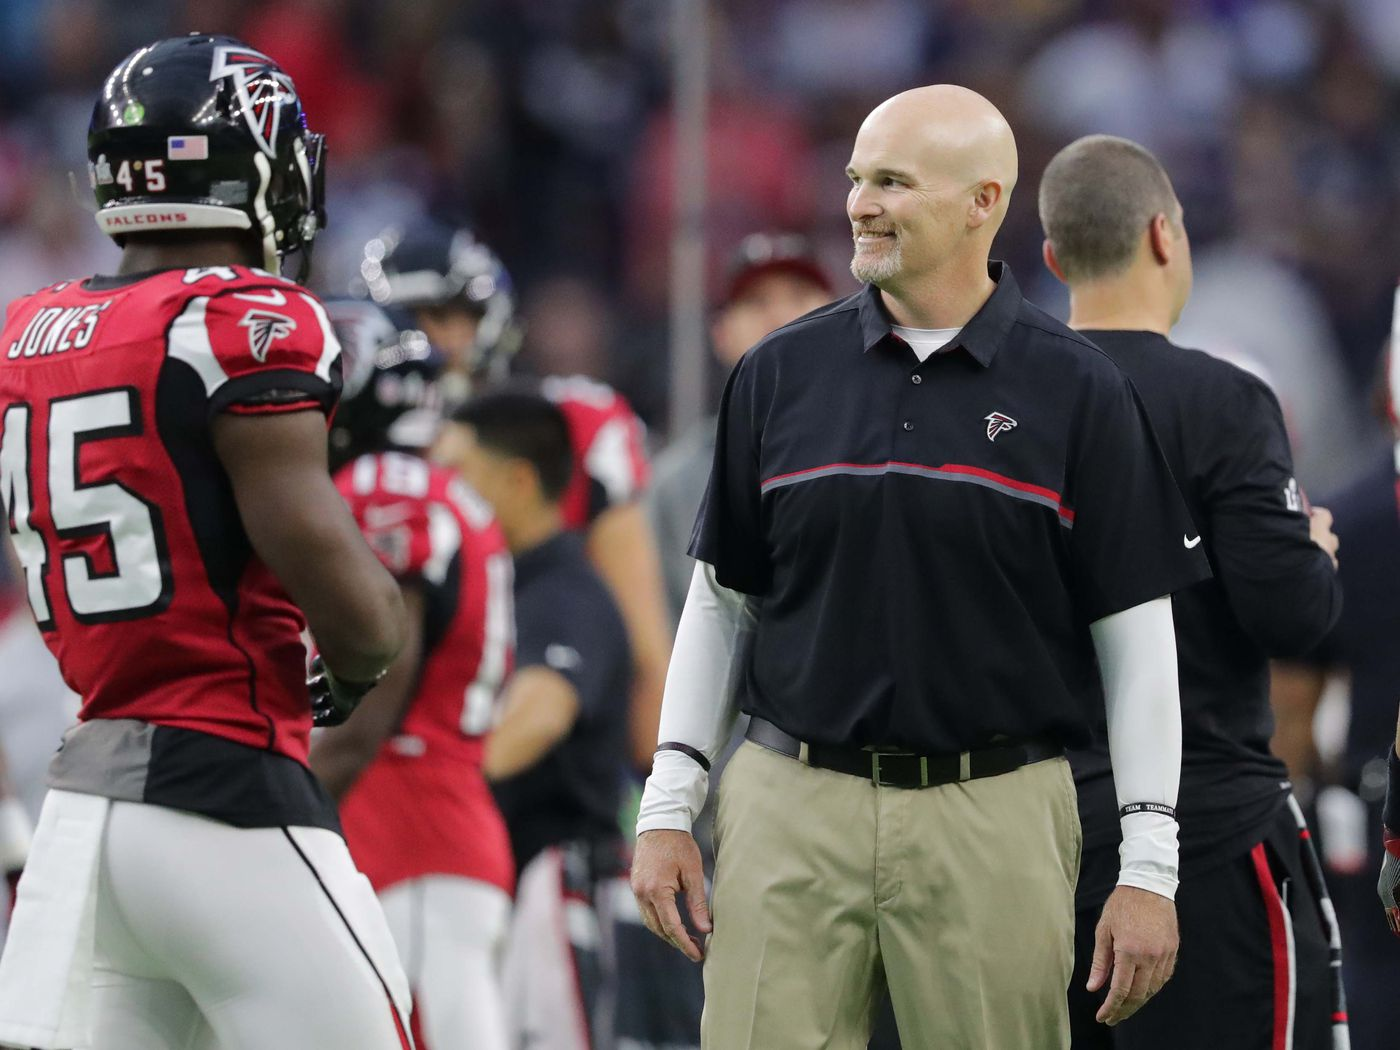 Falcons Fast And Physical Identity Starts With Dan Quinn Sbnation Com